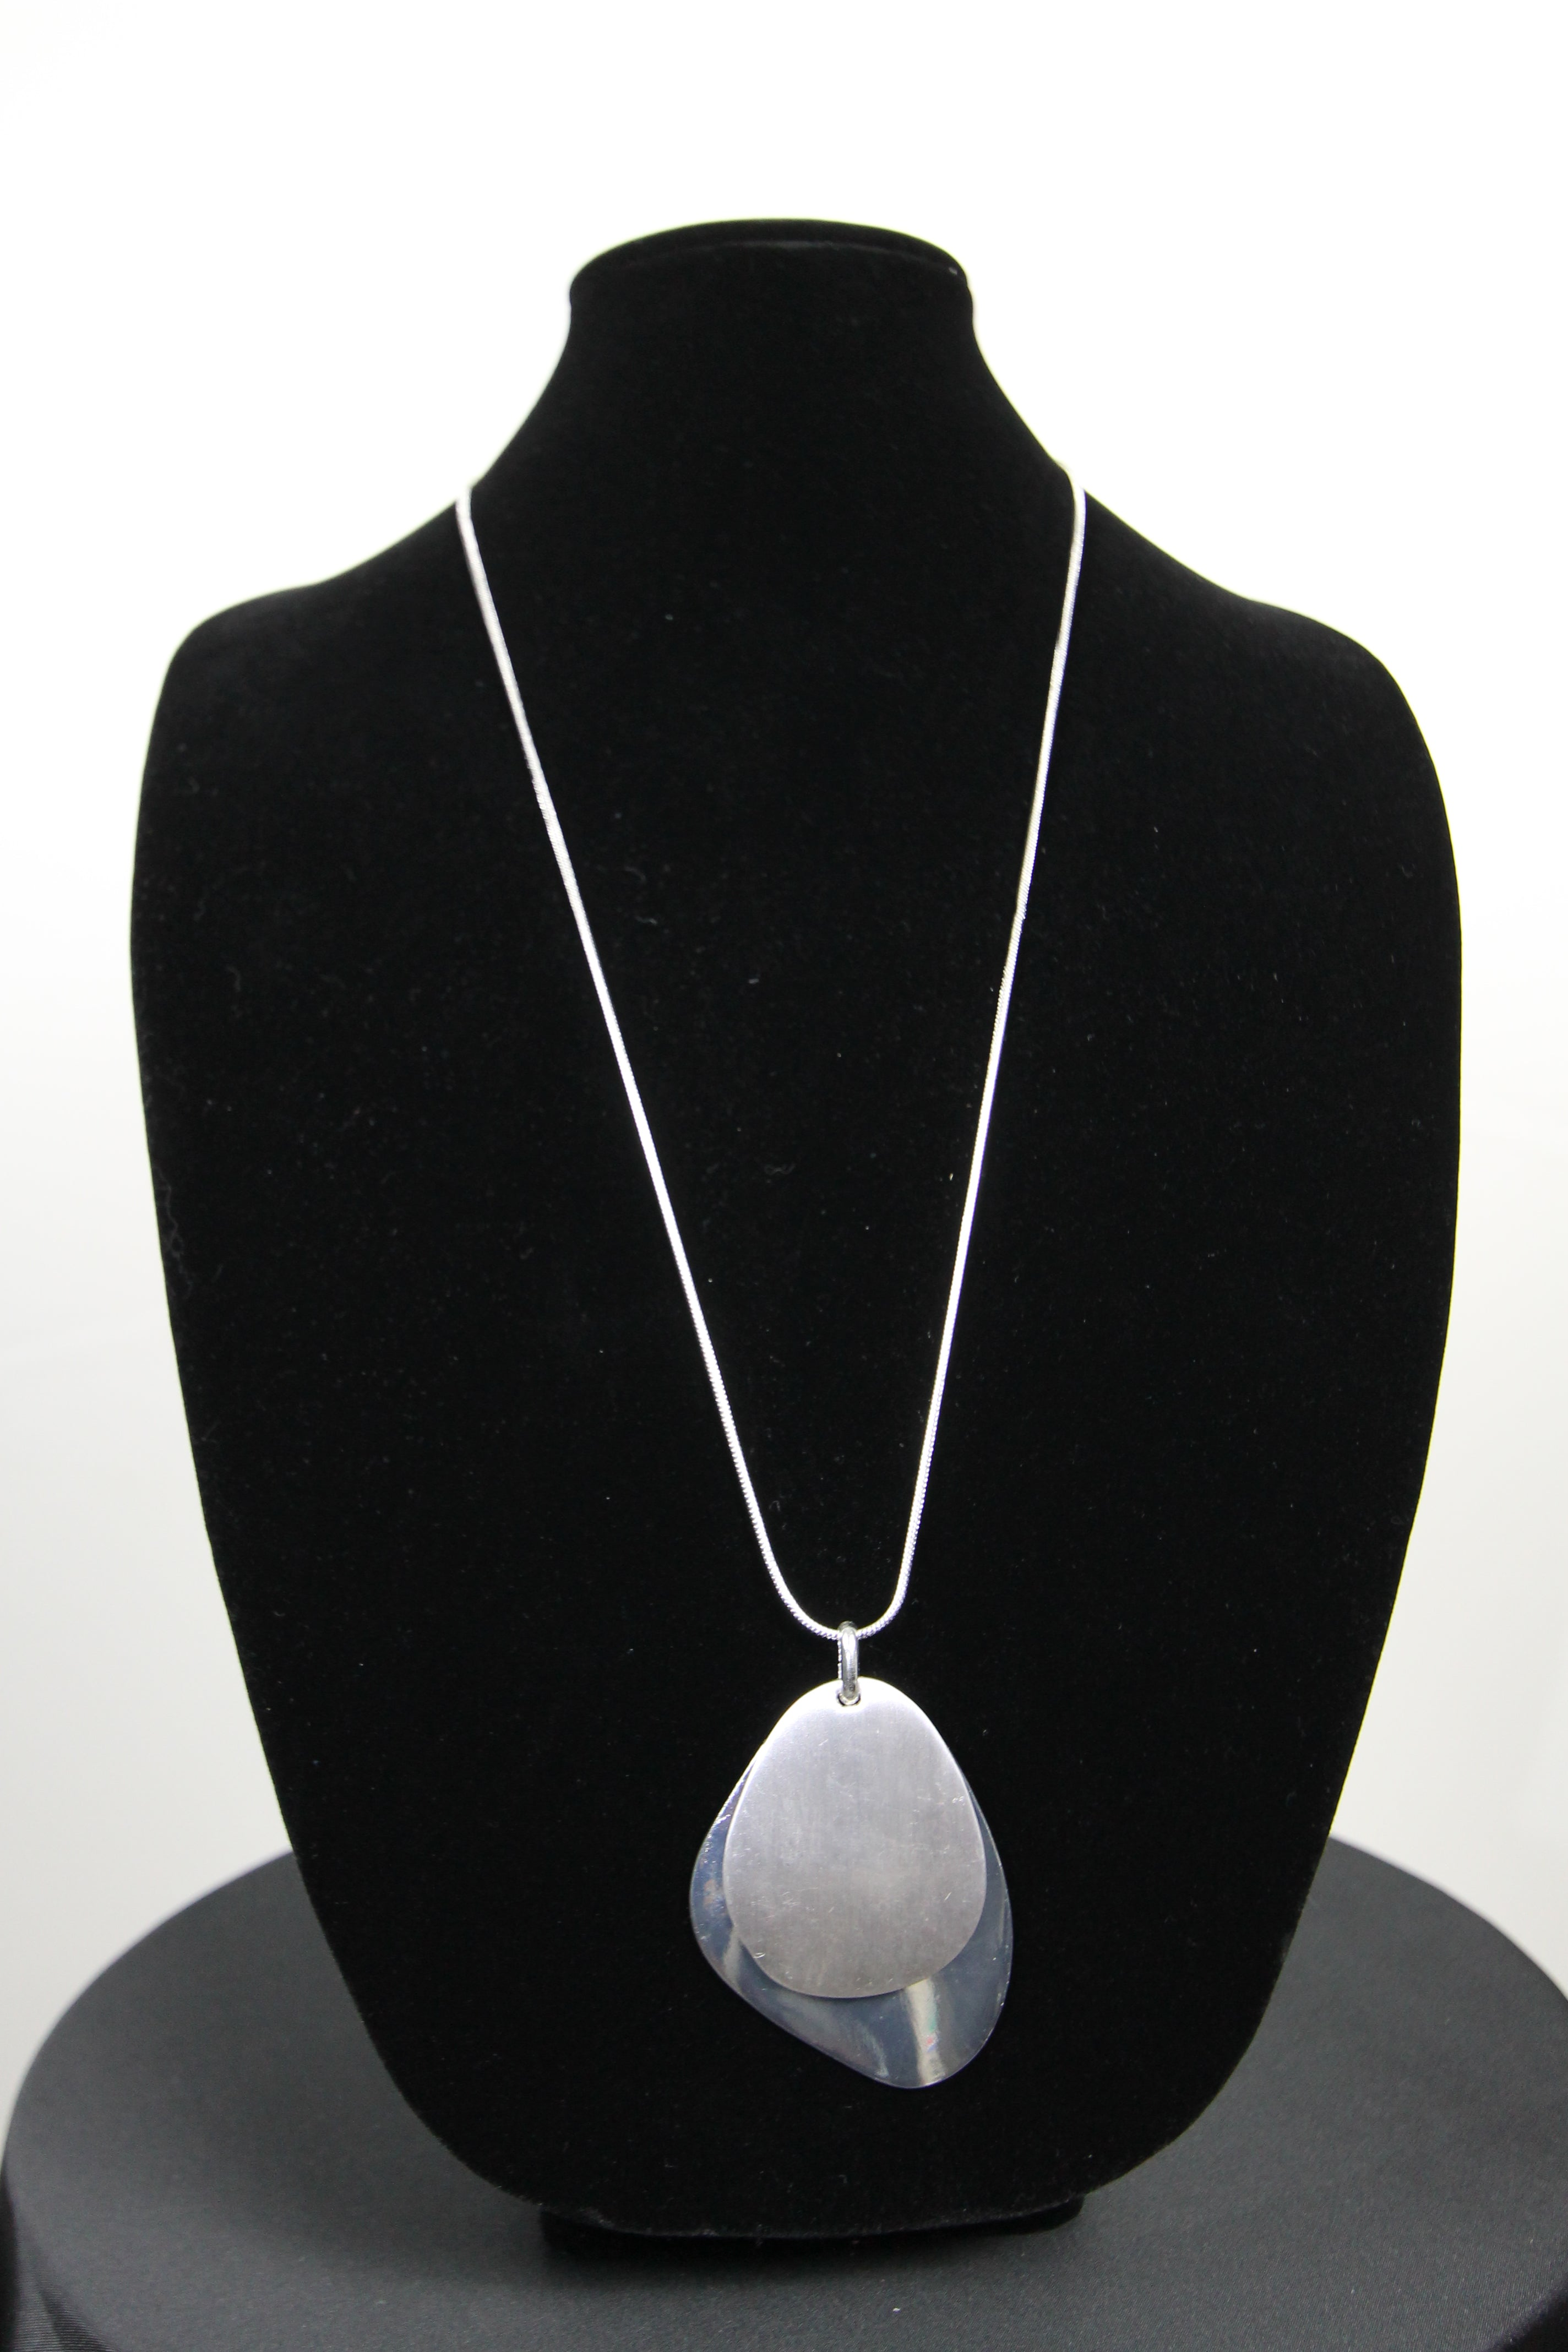 Brushed and Shiny Silver Pendent